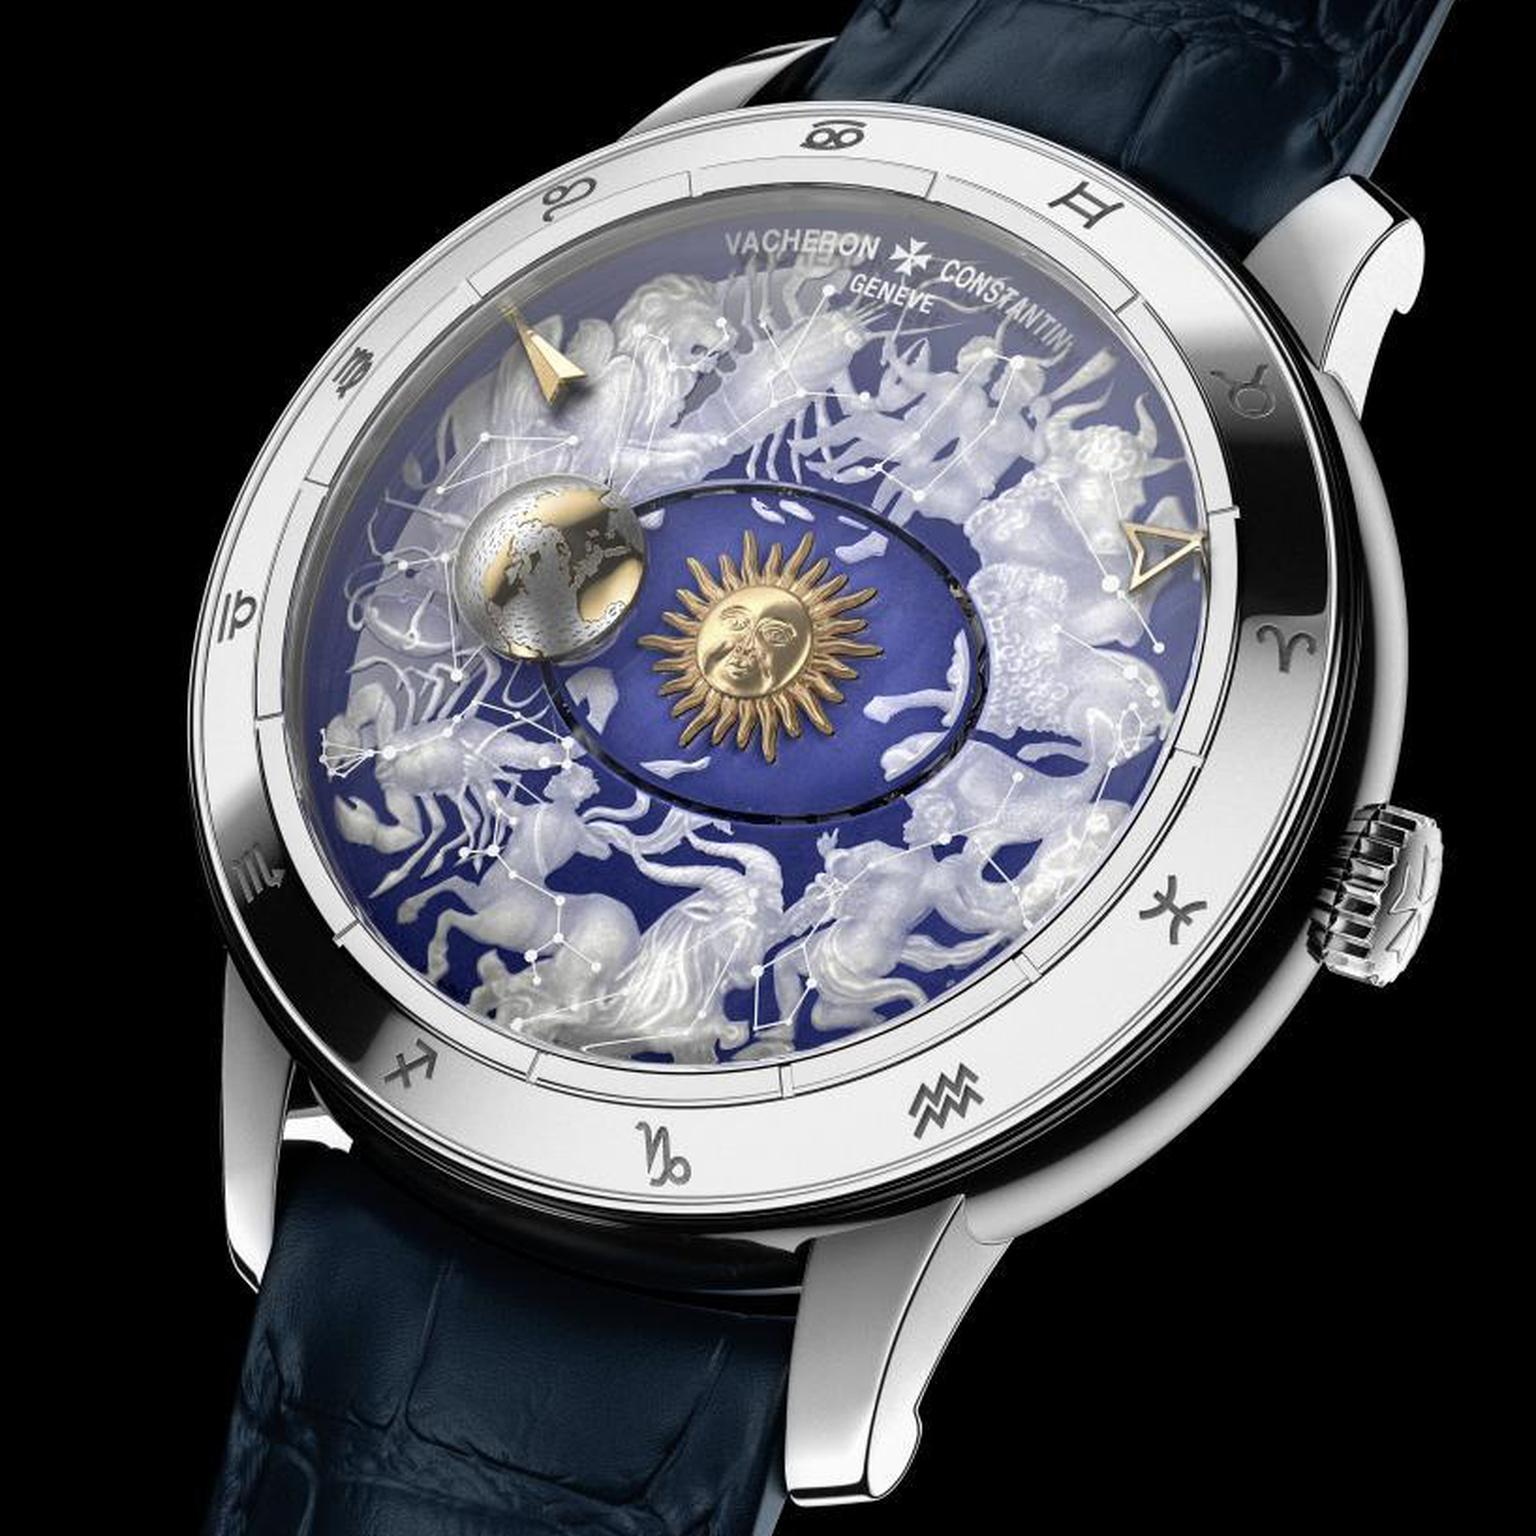 Vacheron Constantin Copernicus watch